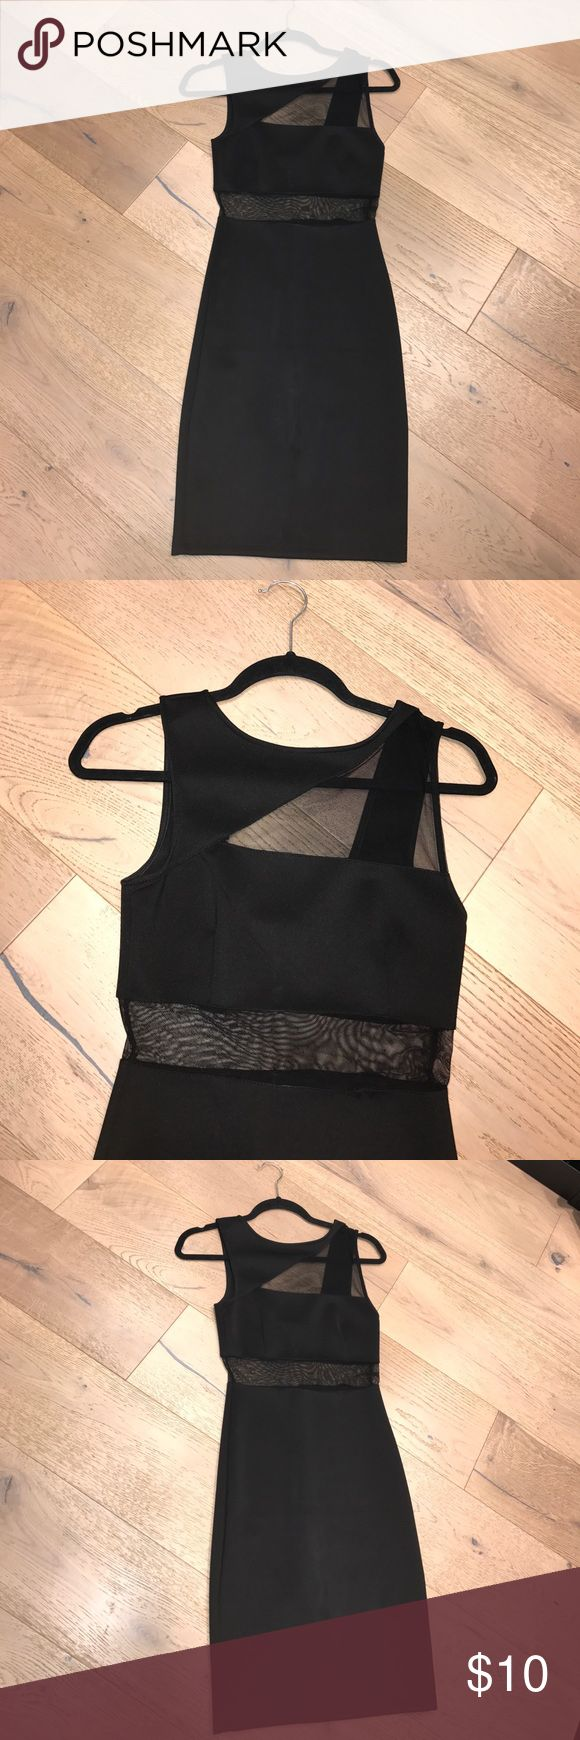 Black body forming dress Great black dress for any occasion dress it up or down.  Nice tight fitting dress, with stretch in the fabric. There is a bit of loosening in the stitching- pictured above. I have still worn it out this way with no worries.  😀 Lulu's Dresses Midi